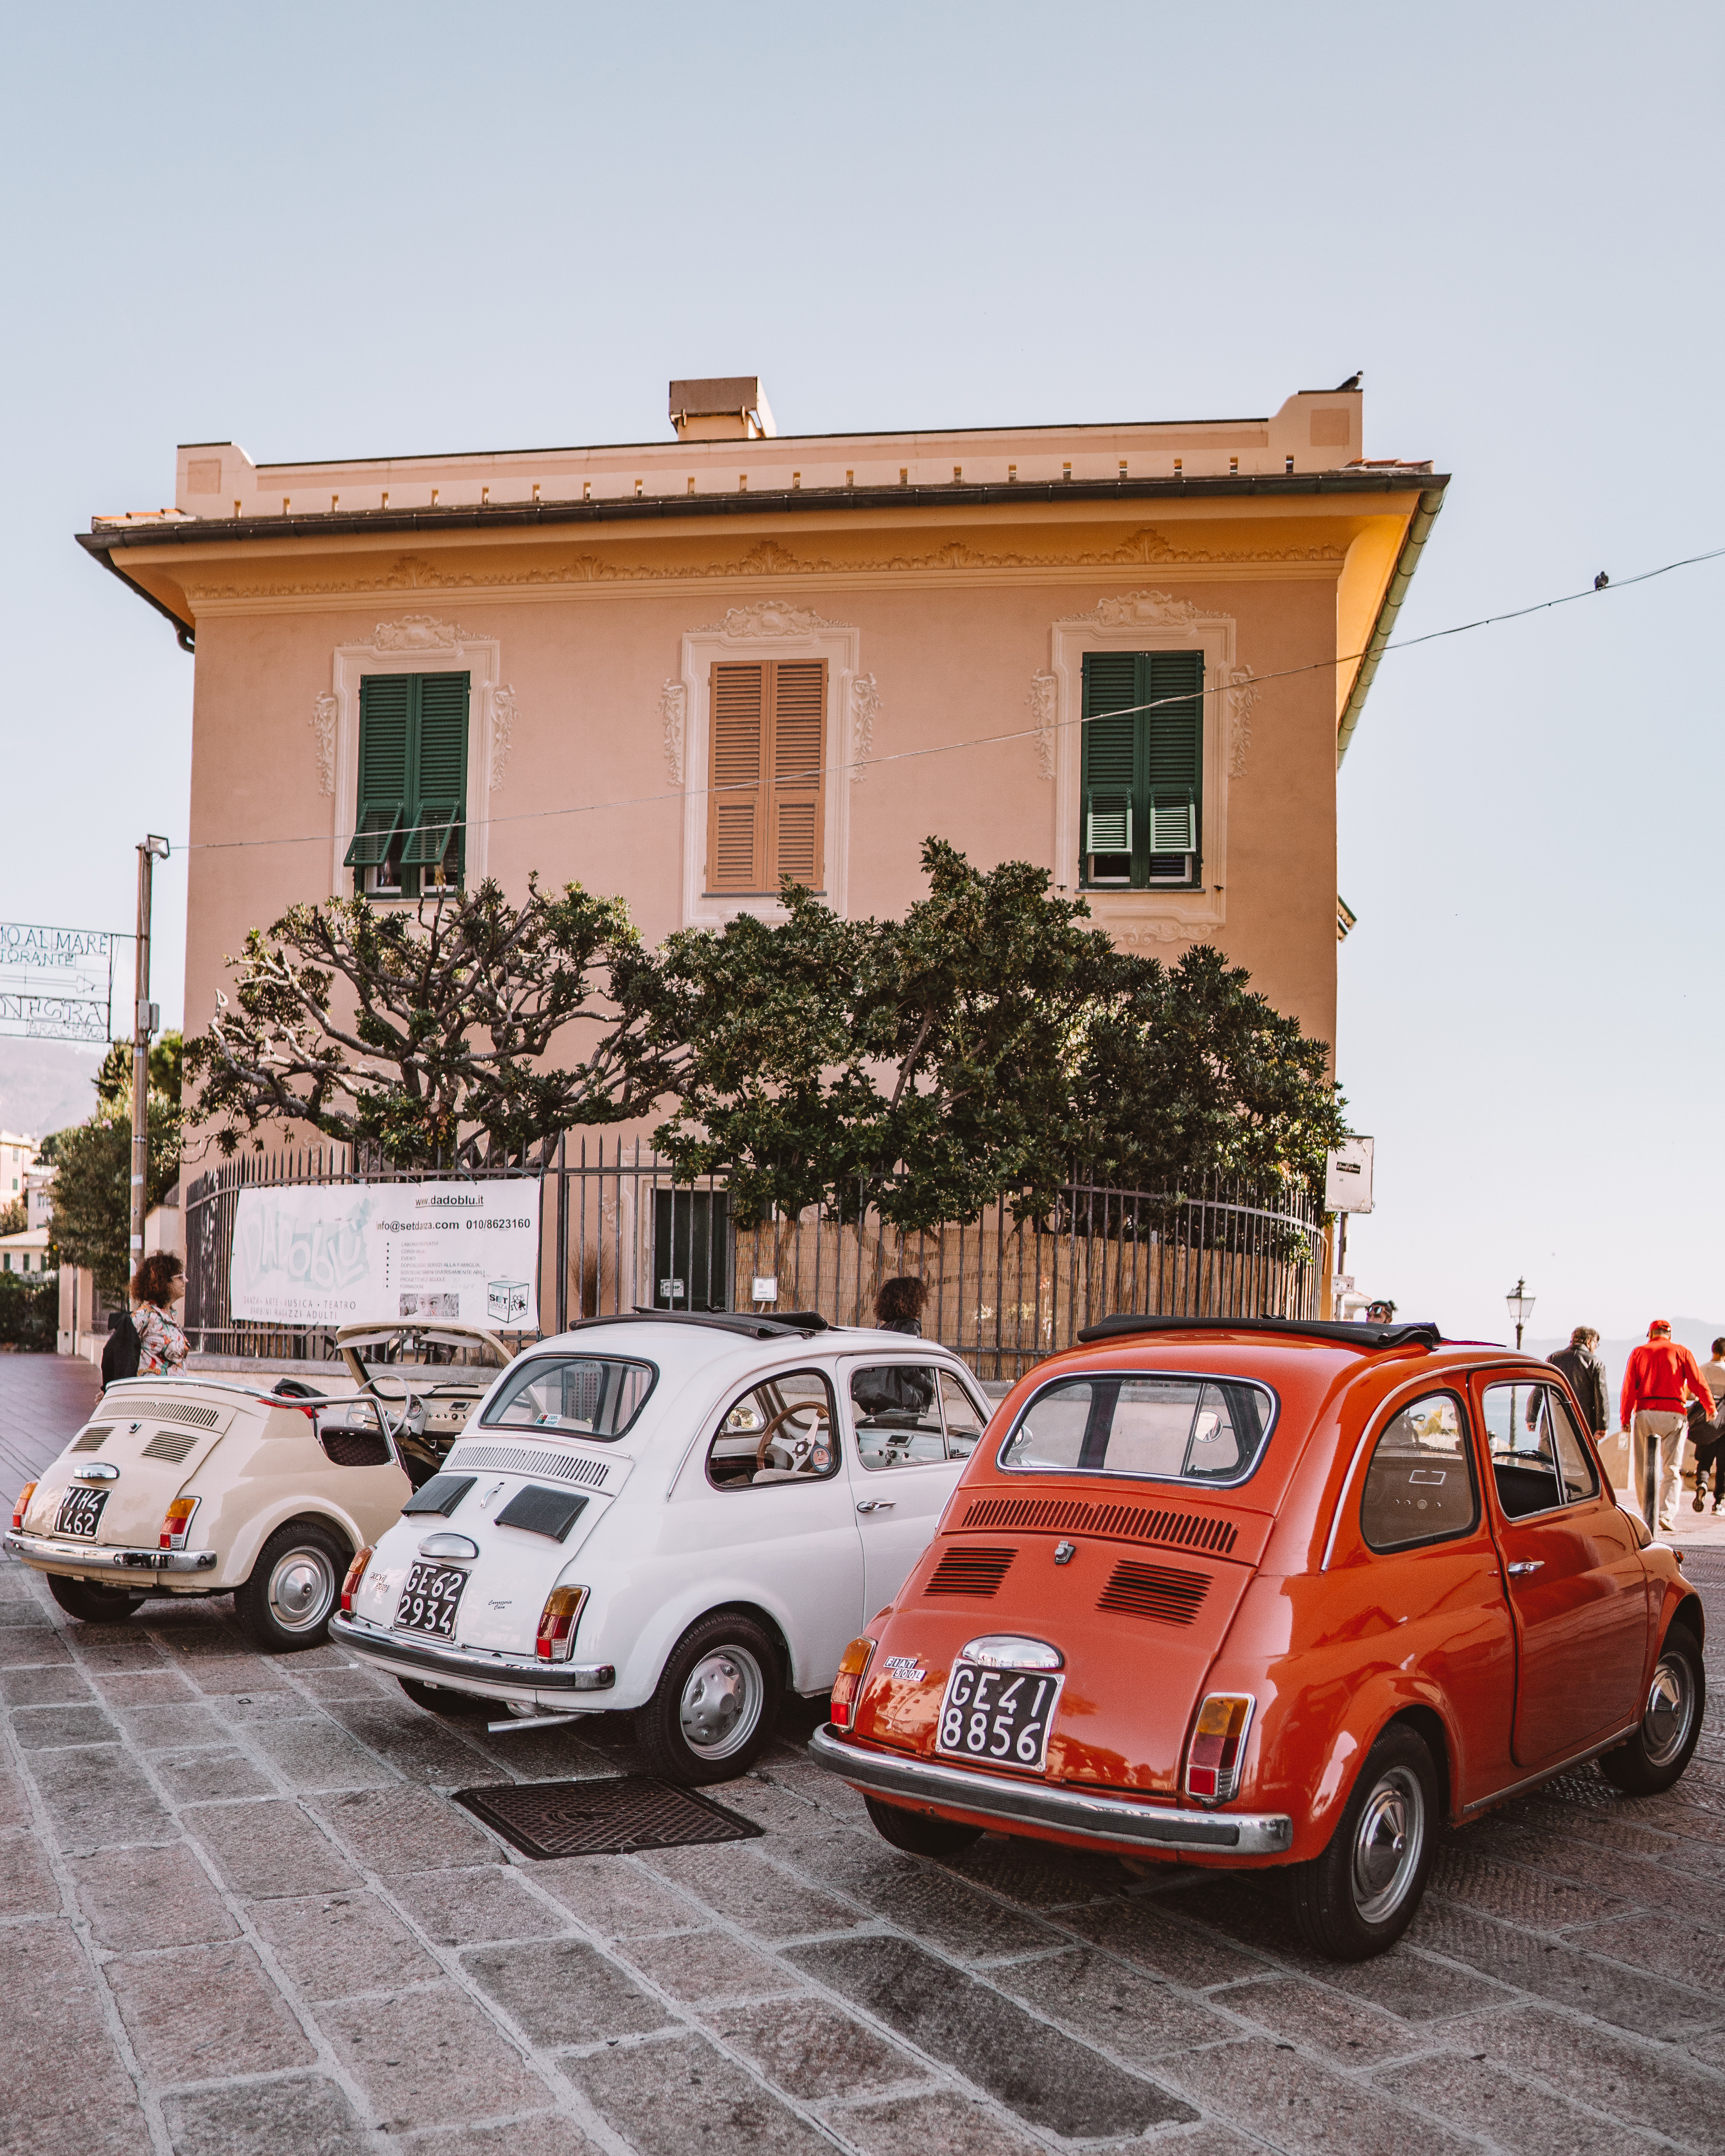 Arriving in Boddacasse with Slow Vintage Tours